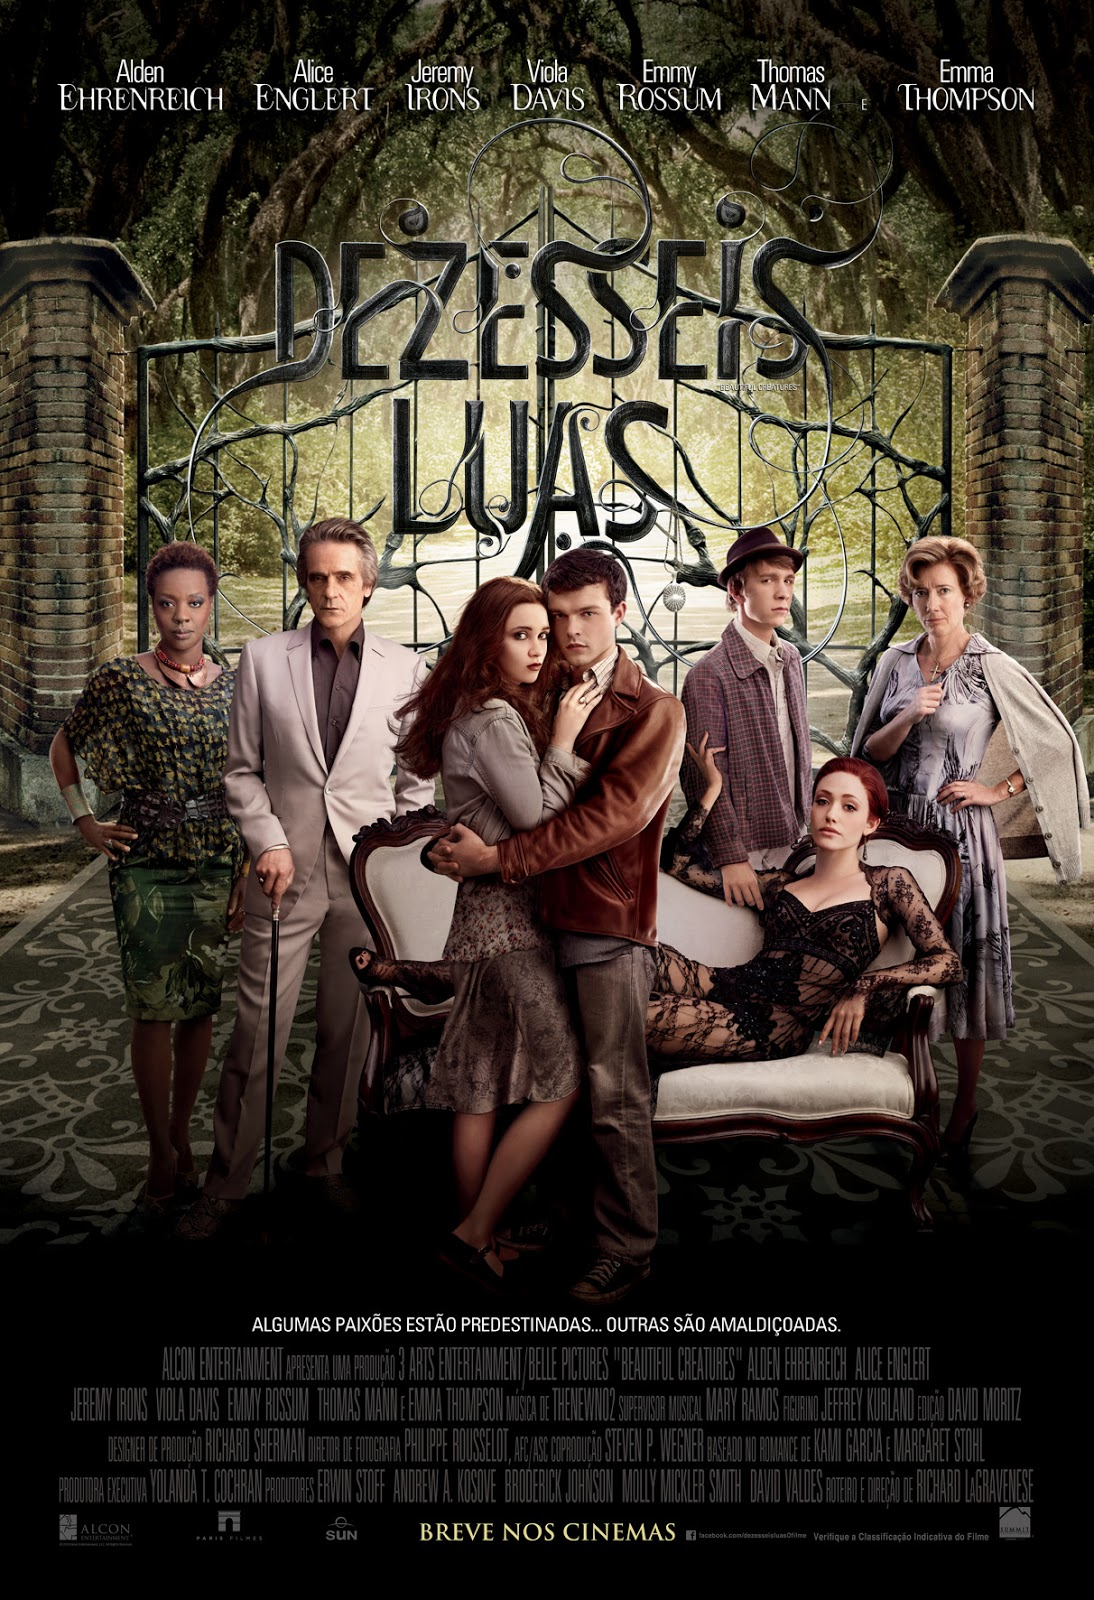 Dezesseis Luas (Dublado) TS RMVB Download Gratis